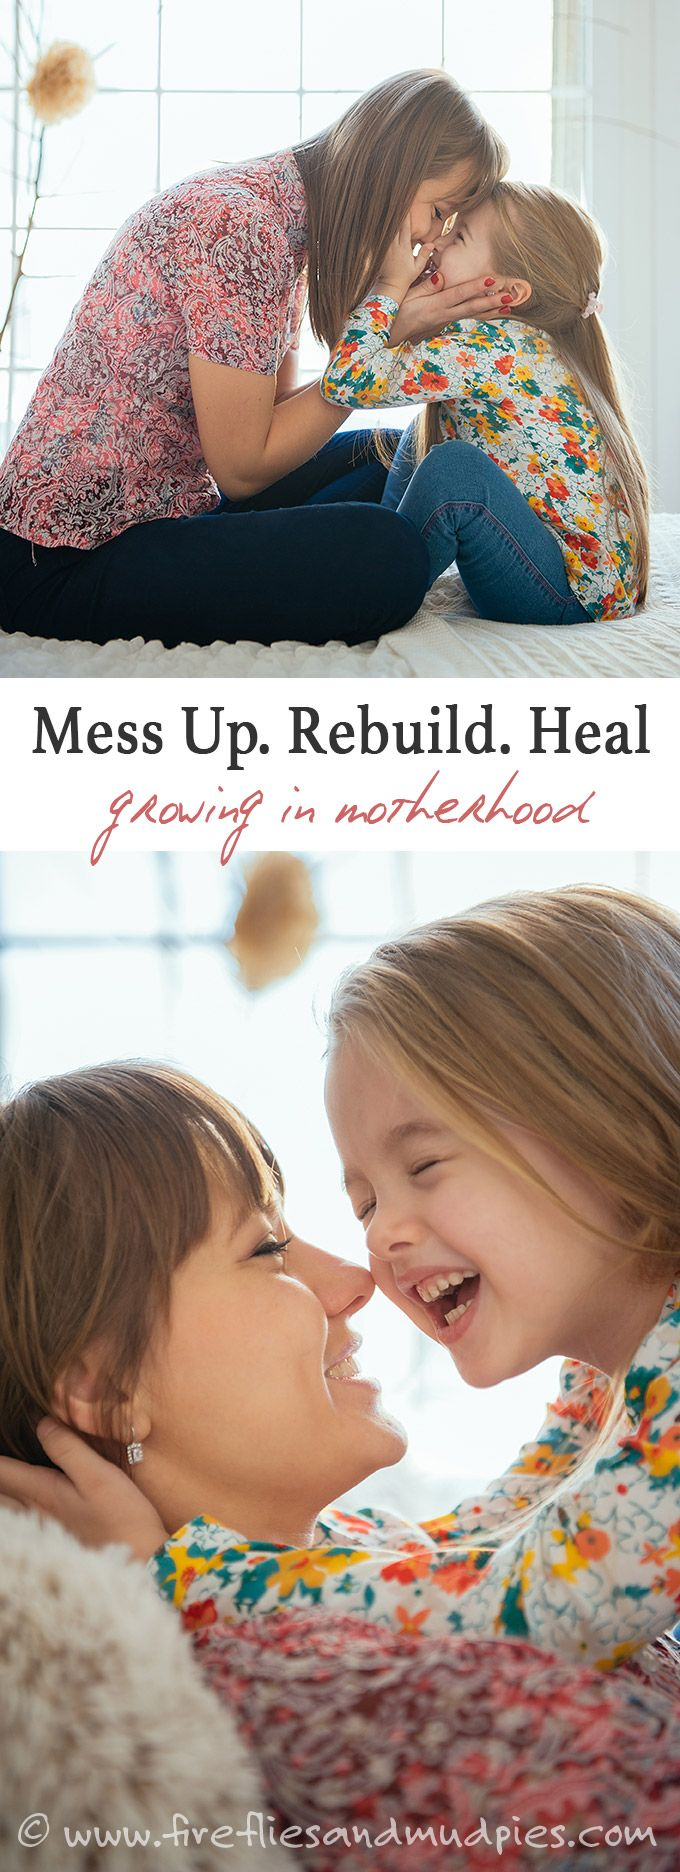 Mess Up. Rebuild. Heal. It's the inevitable pattern of motherhood and how we grow and learn.